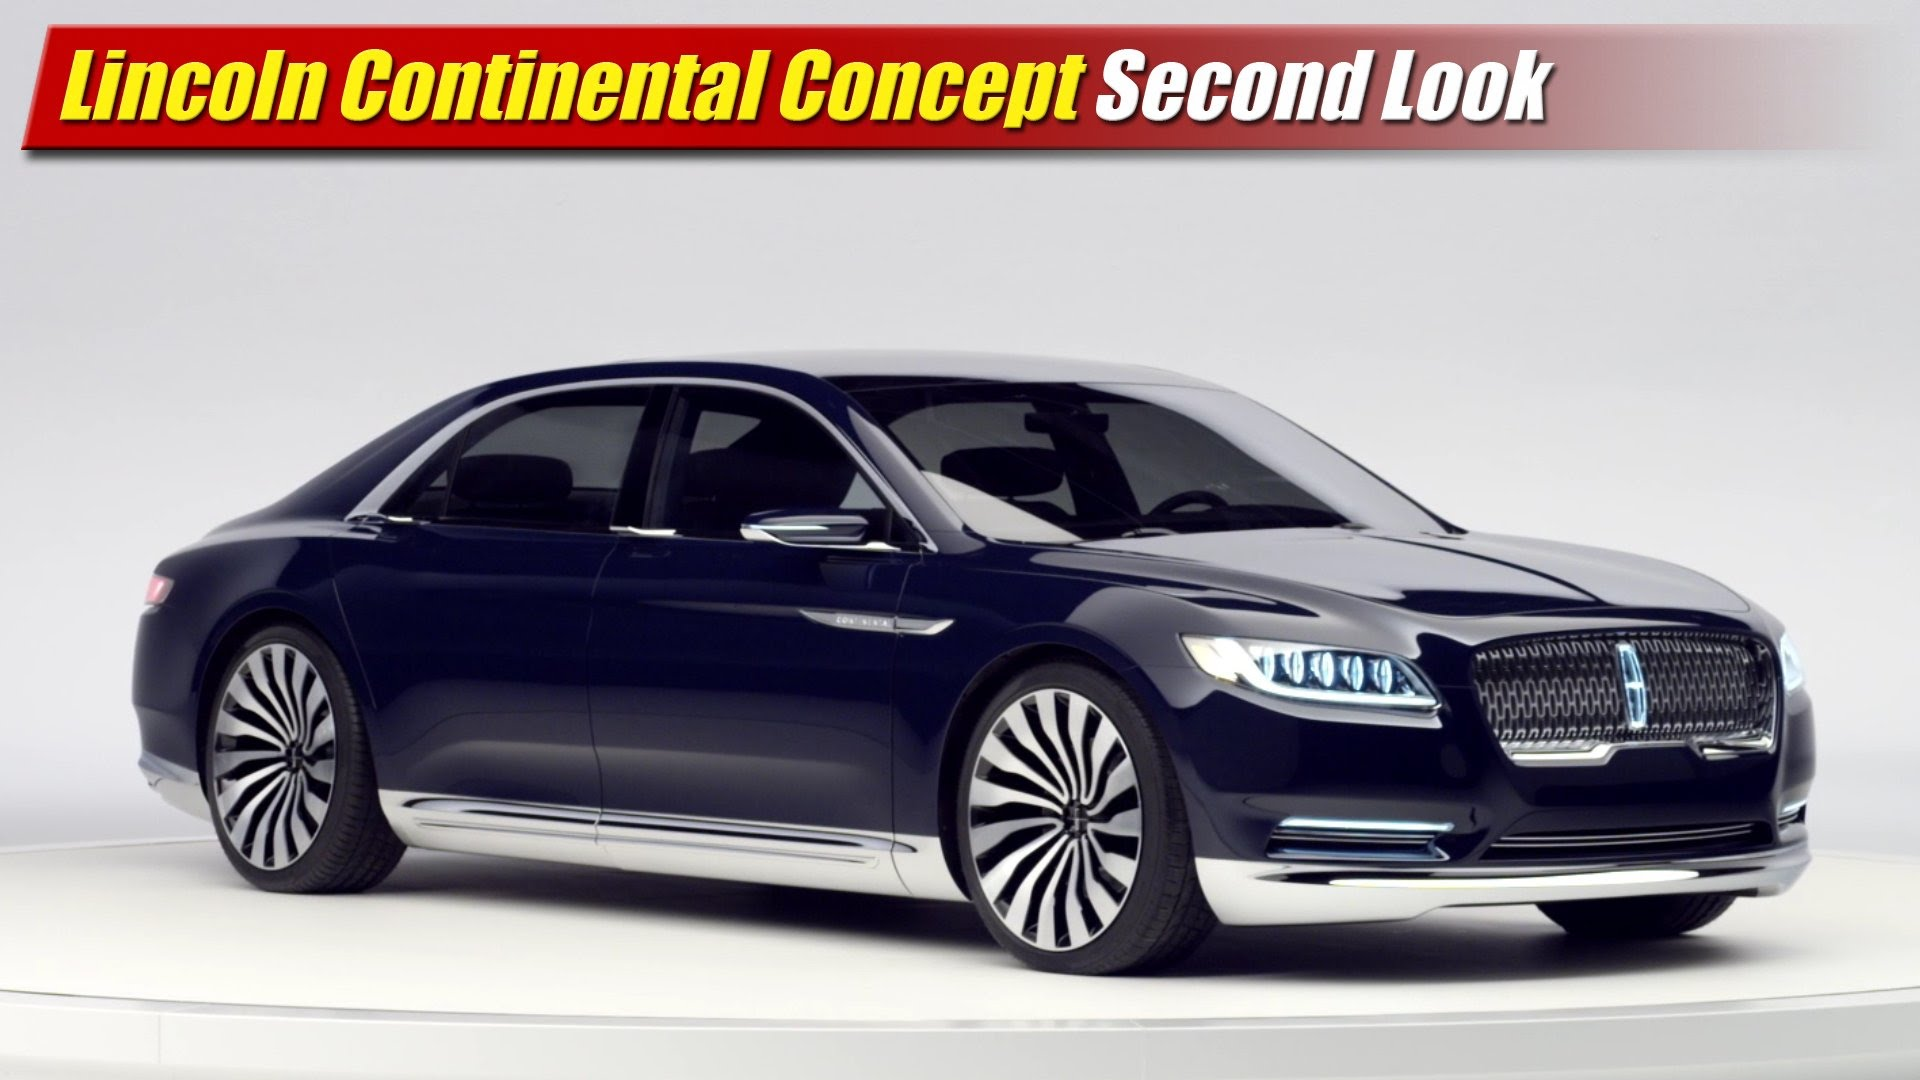 http://testdriven.tv/wp-content/uploads/2015/04/second-look-lincoln-continental-concept.jpg